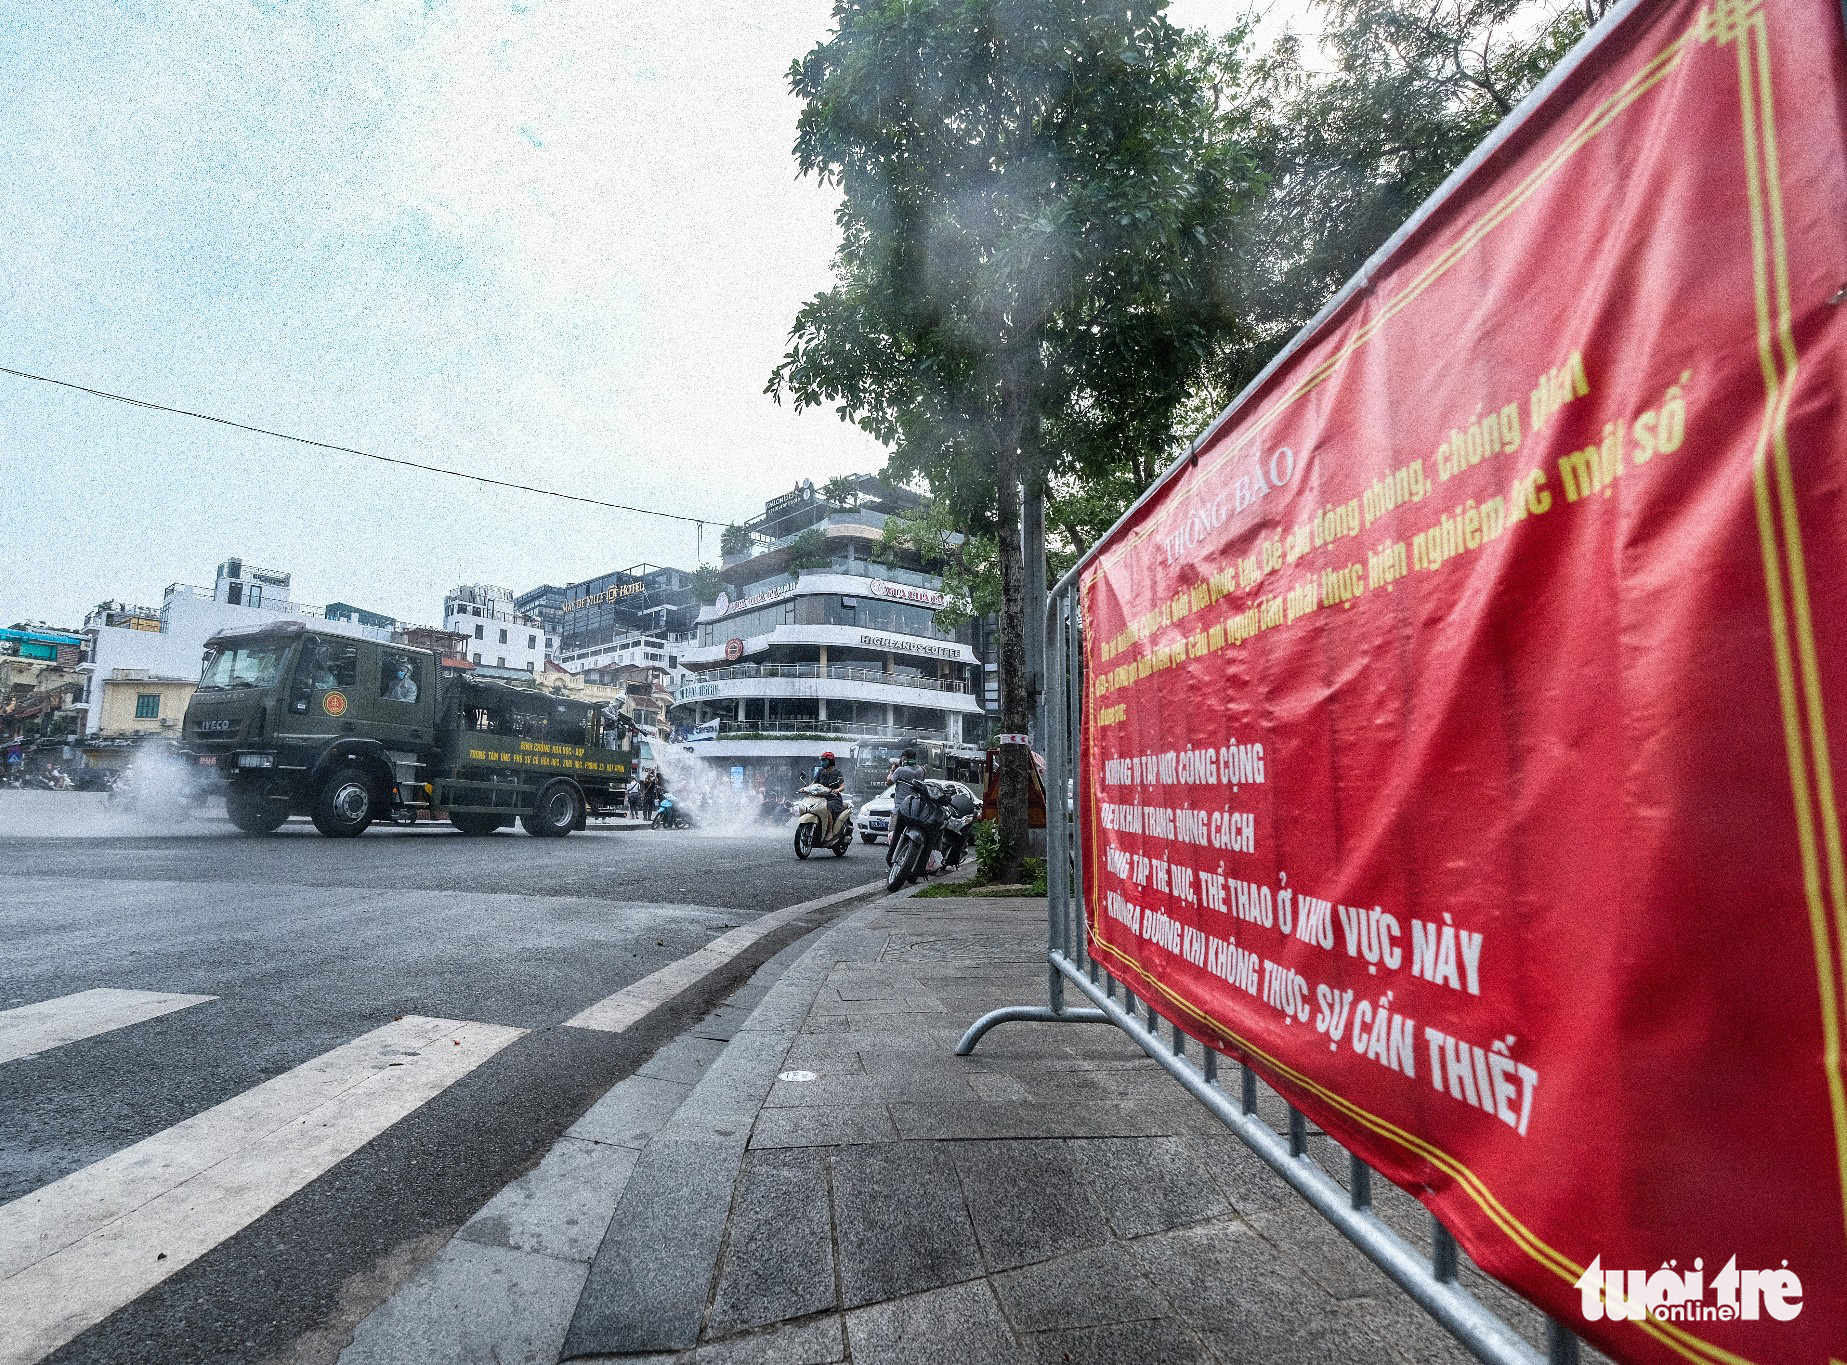 This image shows a specialized vehicle spraying chemicals to disinfect a street in Hoan Kiem District, Hanoi, July 26, 2021. Photo: Nam Tran / Tuoi Tre